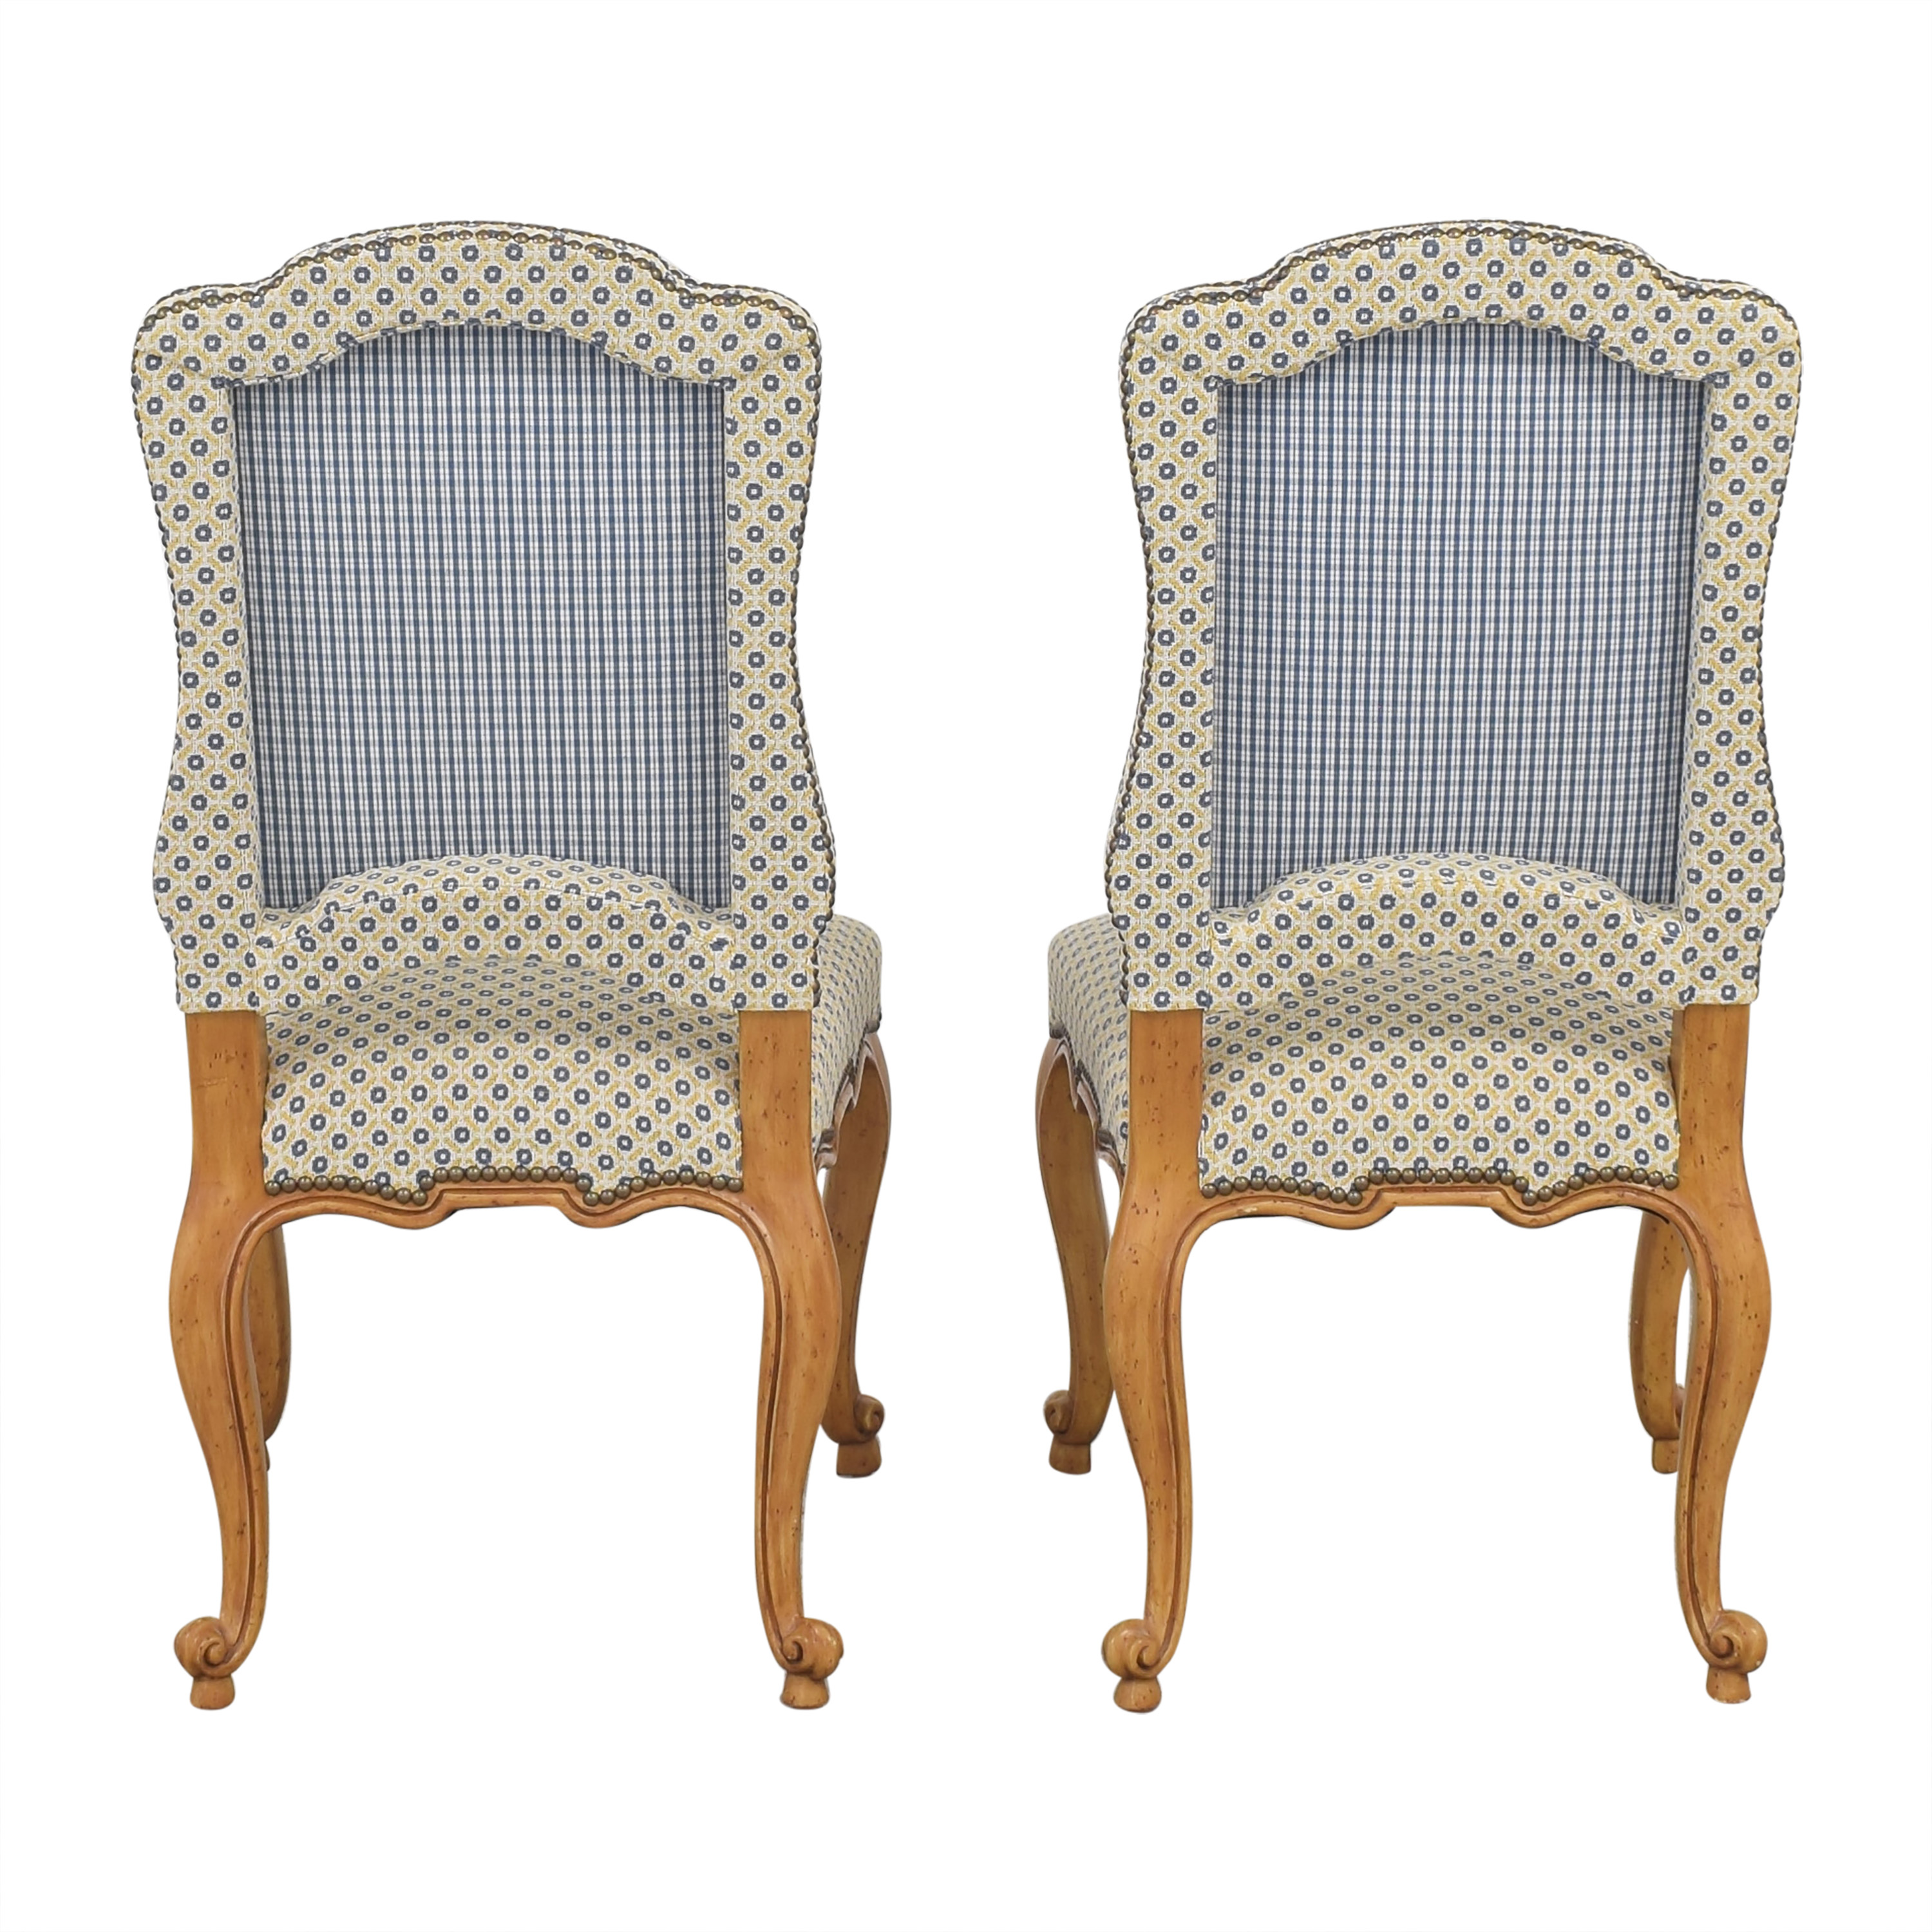 shop Minton-Spidell Regence Dining Side Chairs Minton-Spidell Chairs